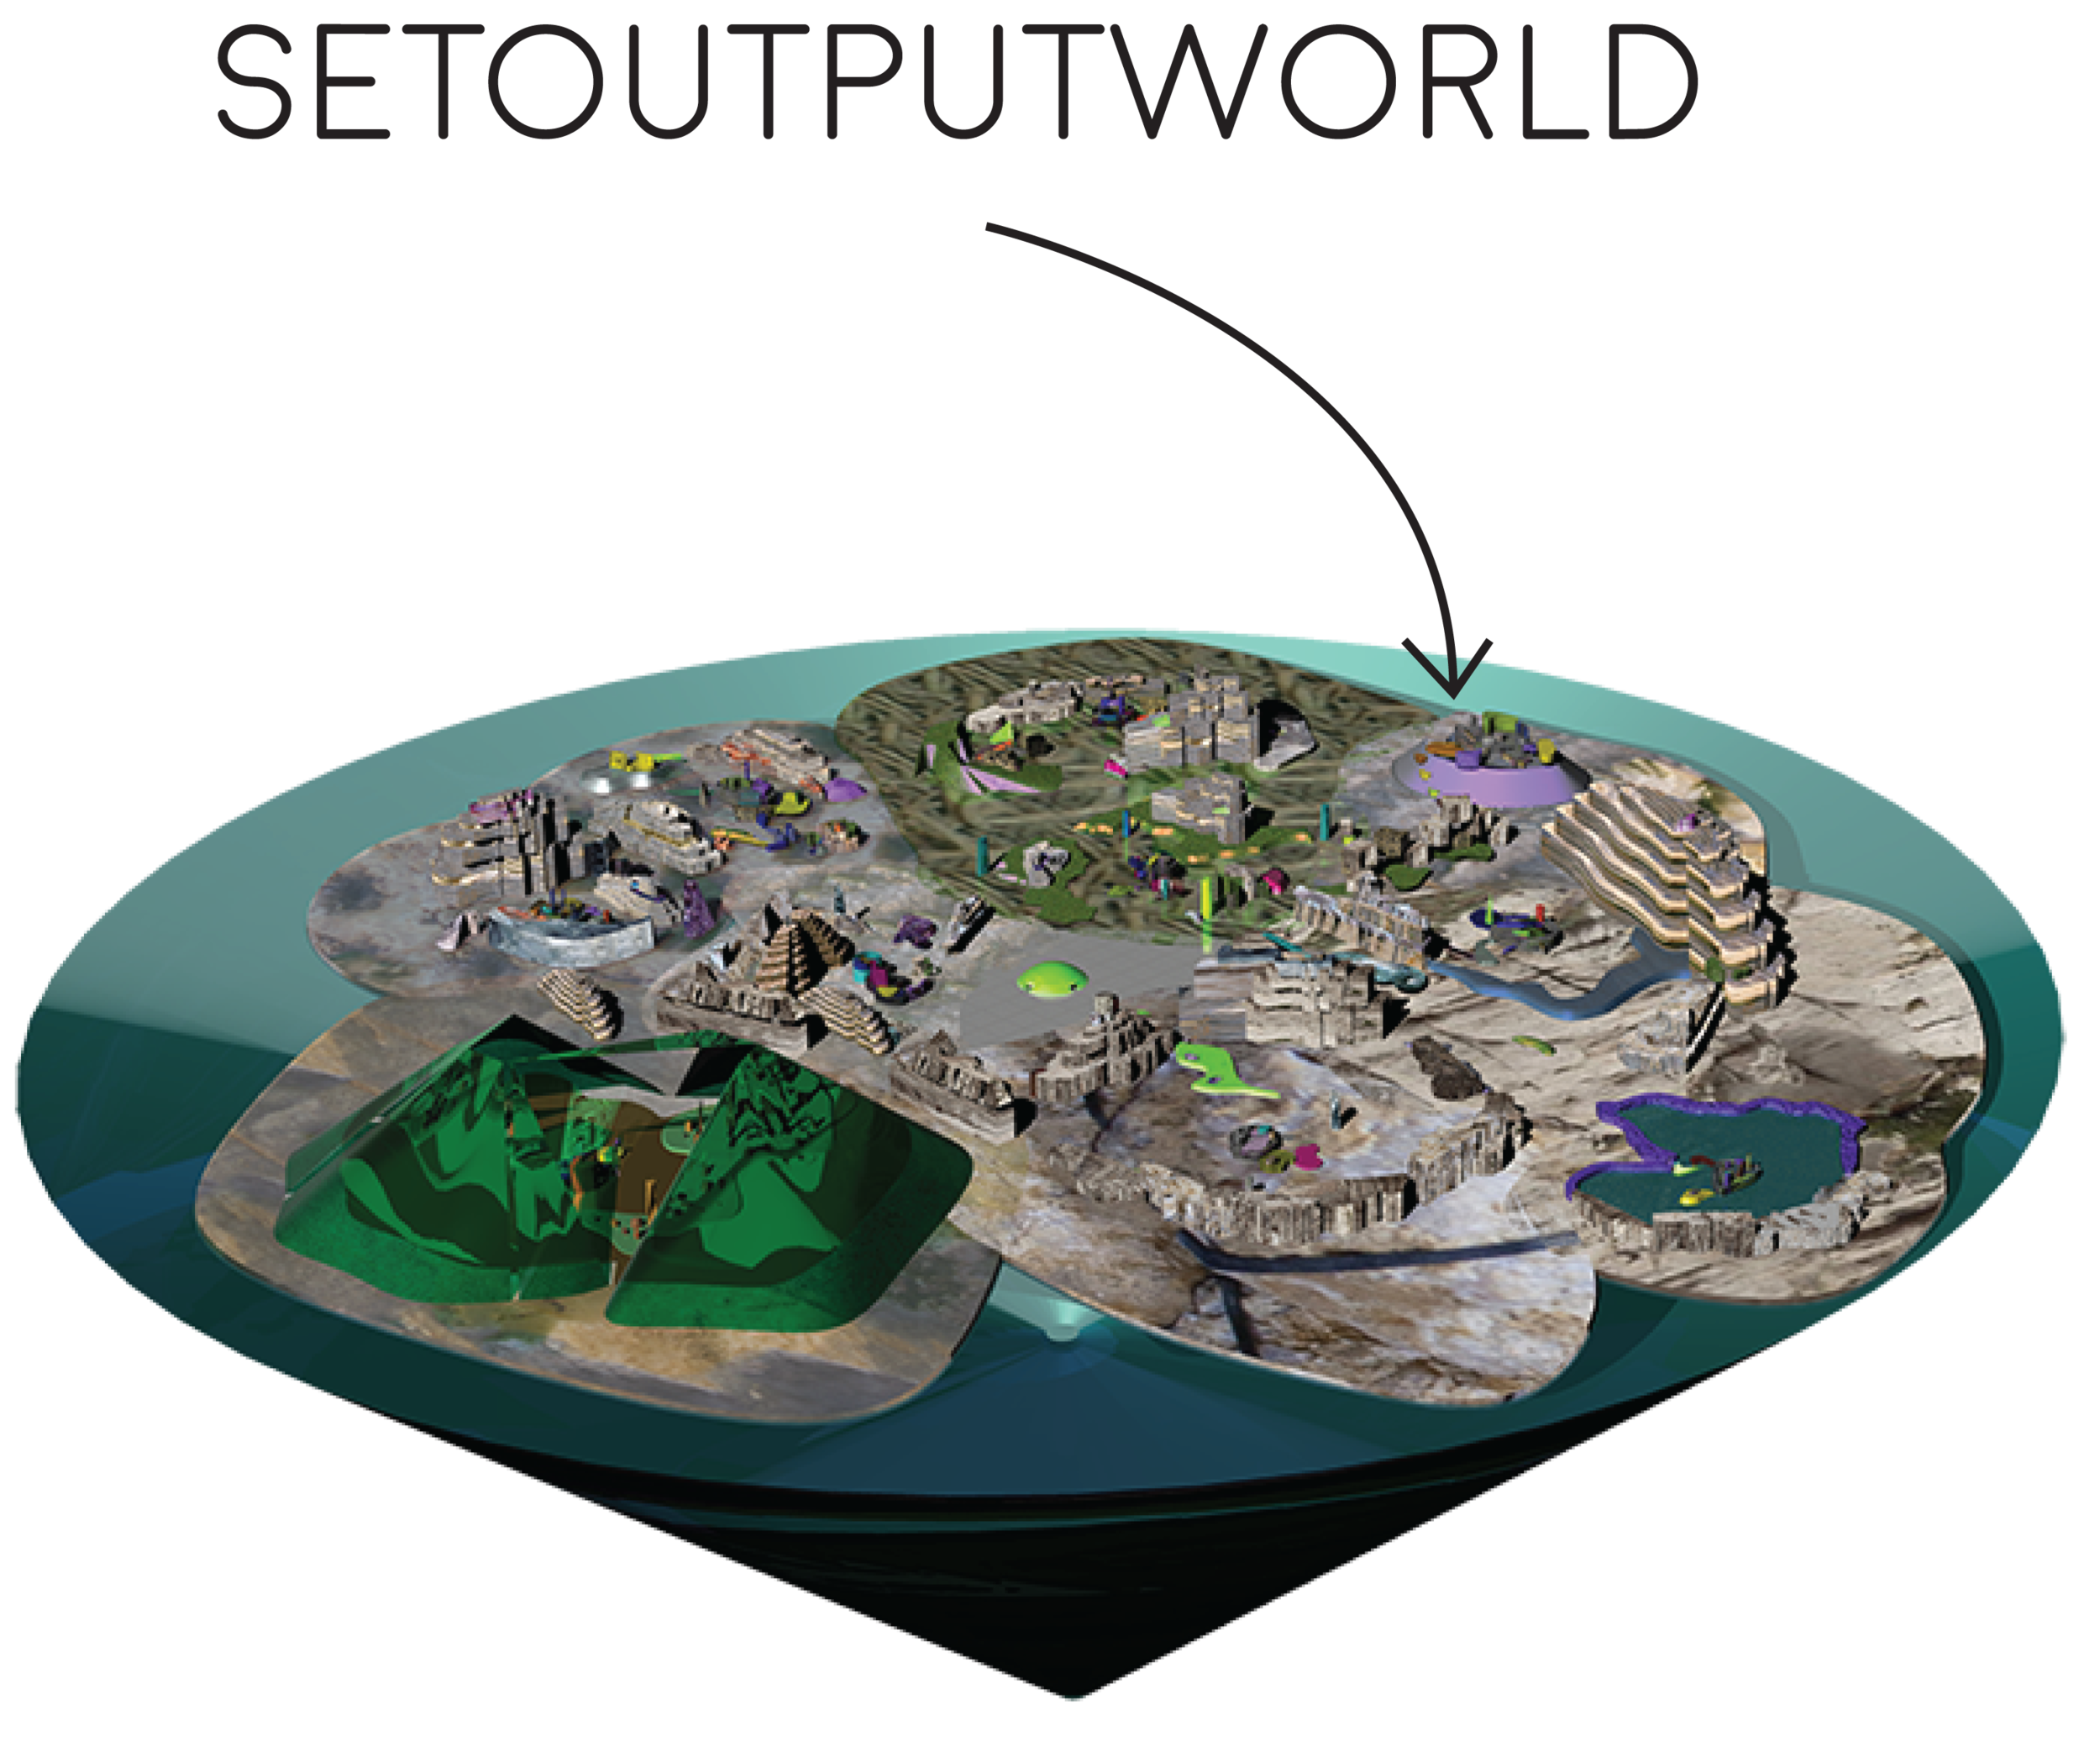 SetOutputWorld (a world of the wrong size)  engages with practices of world-building and myth-making by treating organic objects found at sites of personal pilgrimage as fragments of a geologic body.